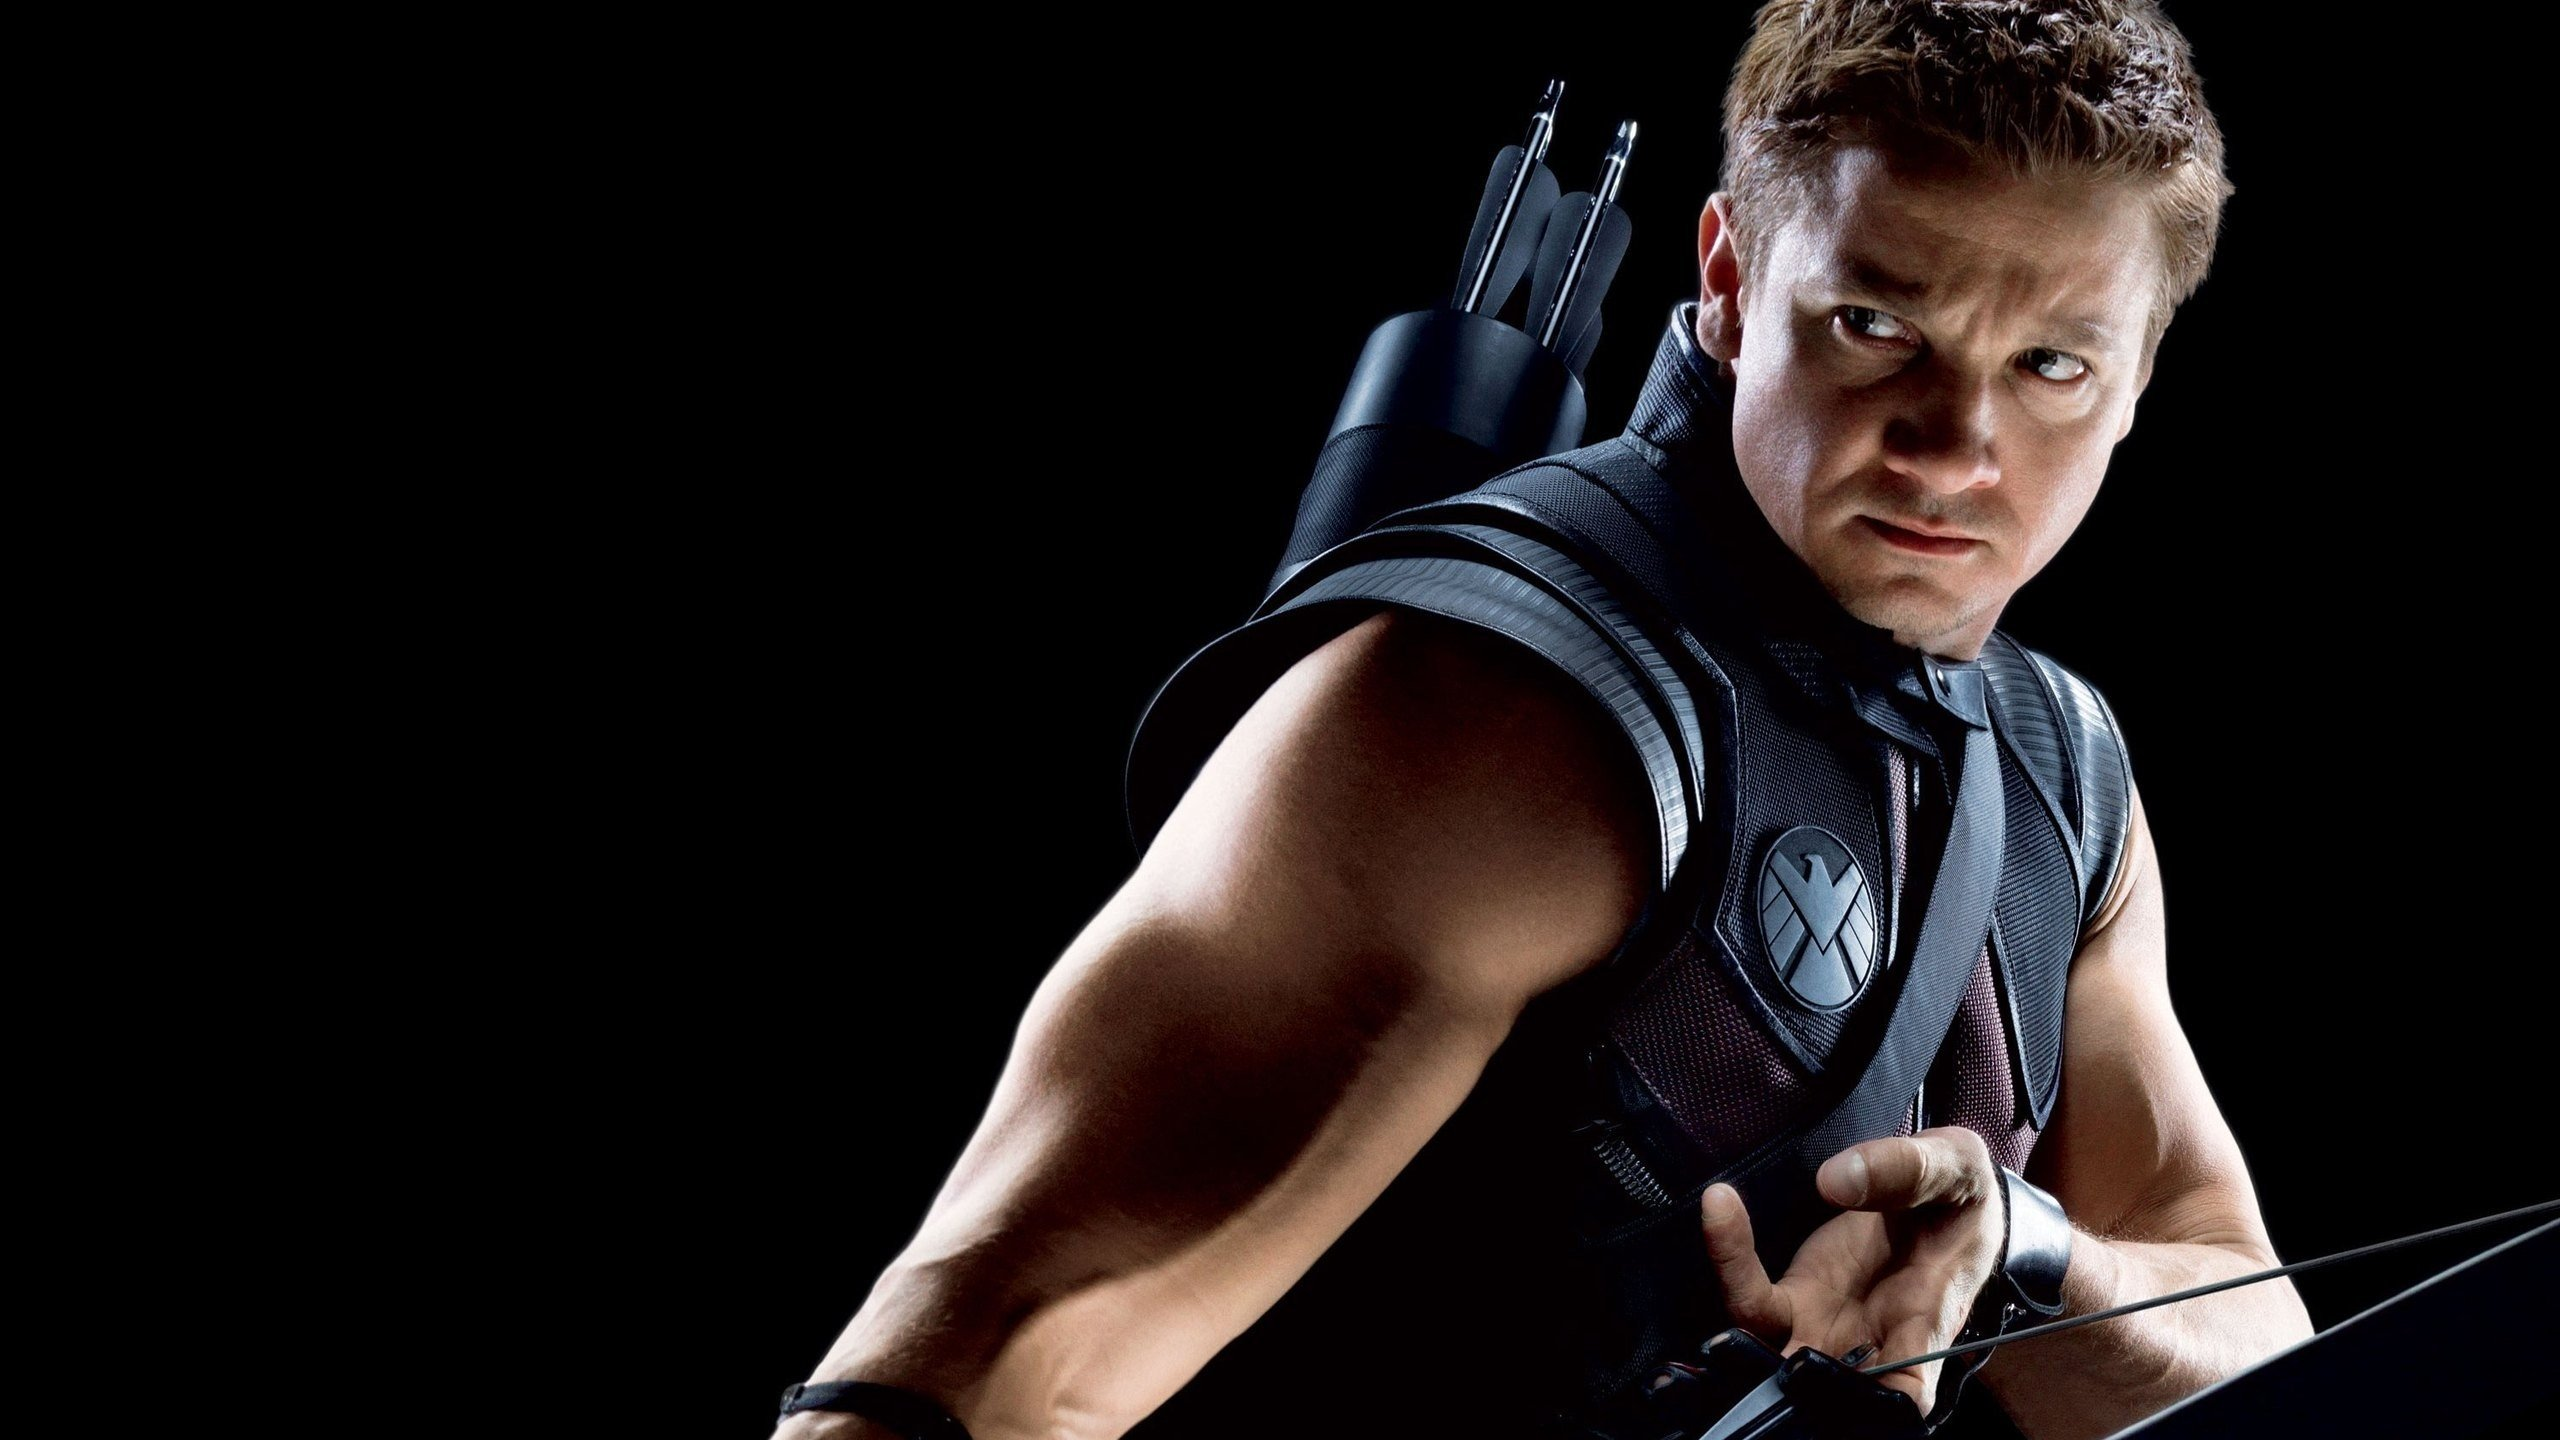 Hawkeye Clint Barton Jeremy Renner The Avengers (movie